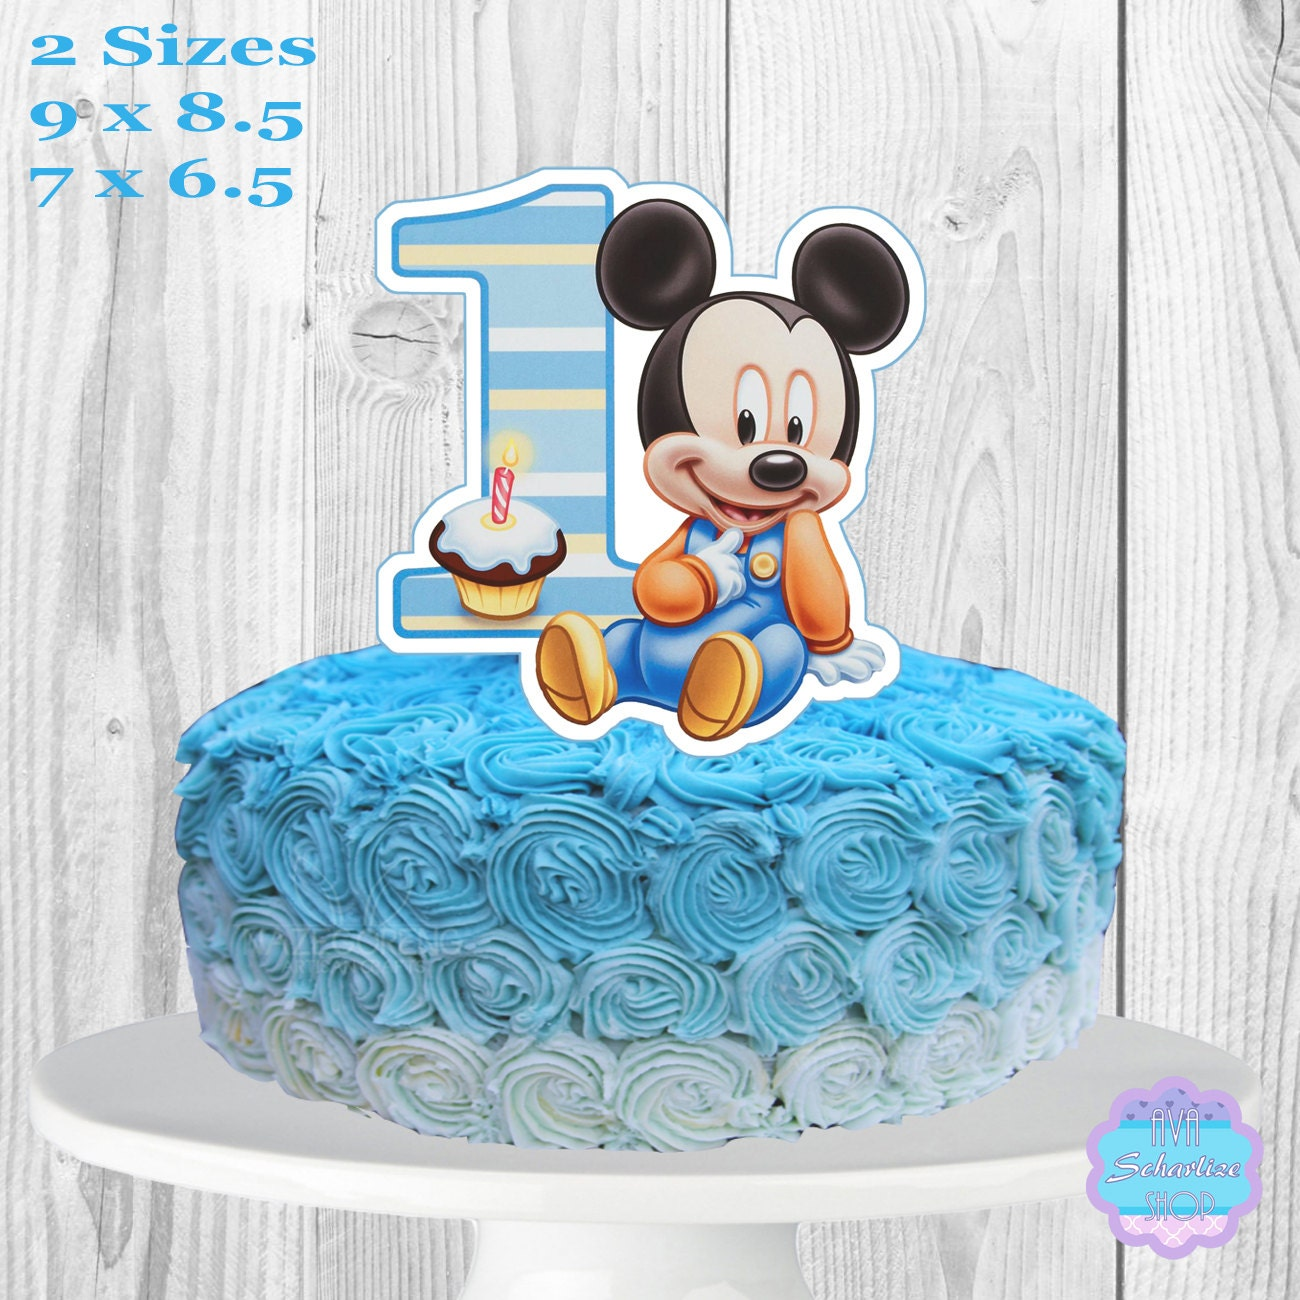 Baby Mickey Mouse Edible Cake Decorations Minnie Mouse Cake Topper Etsy